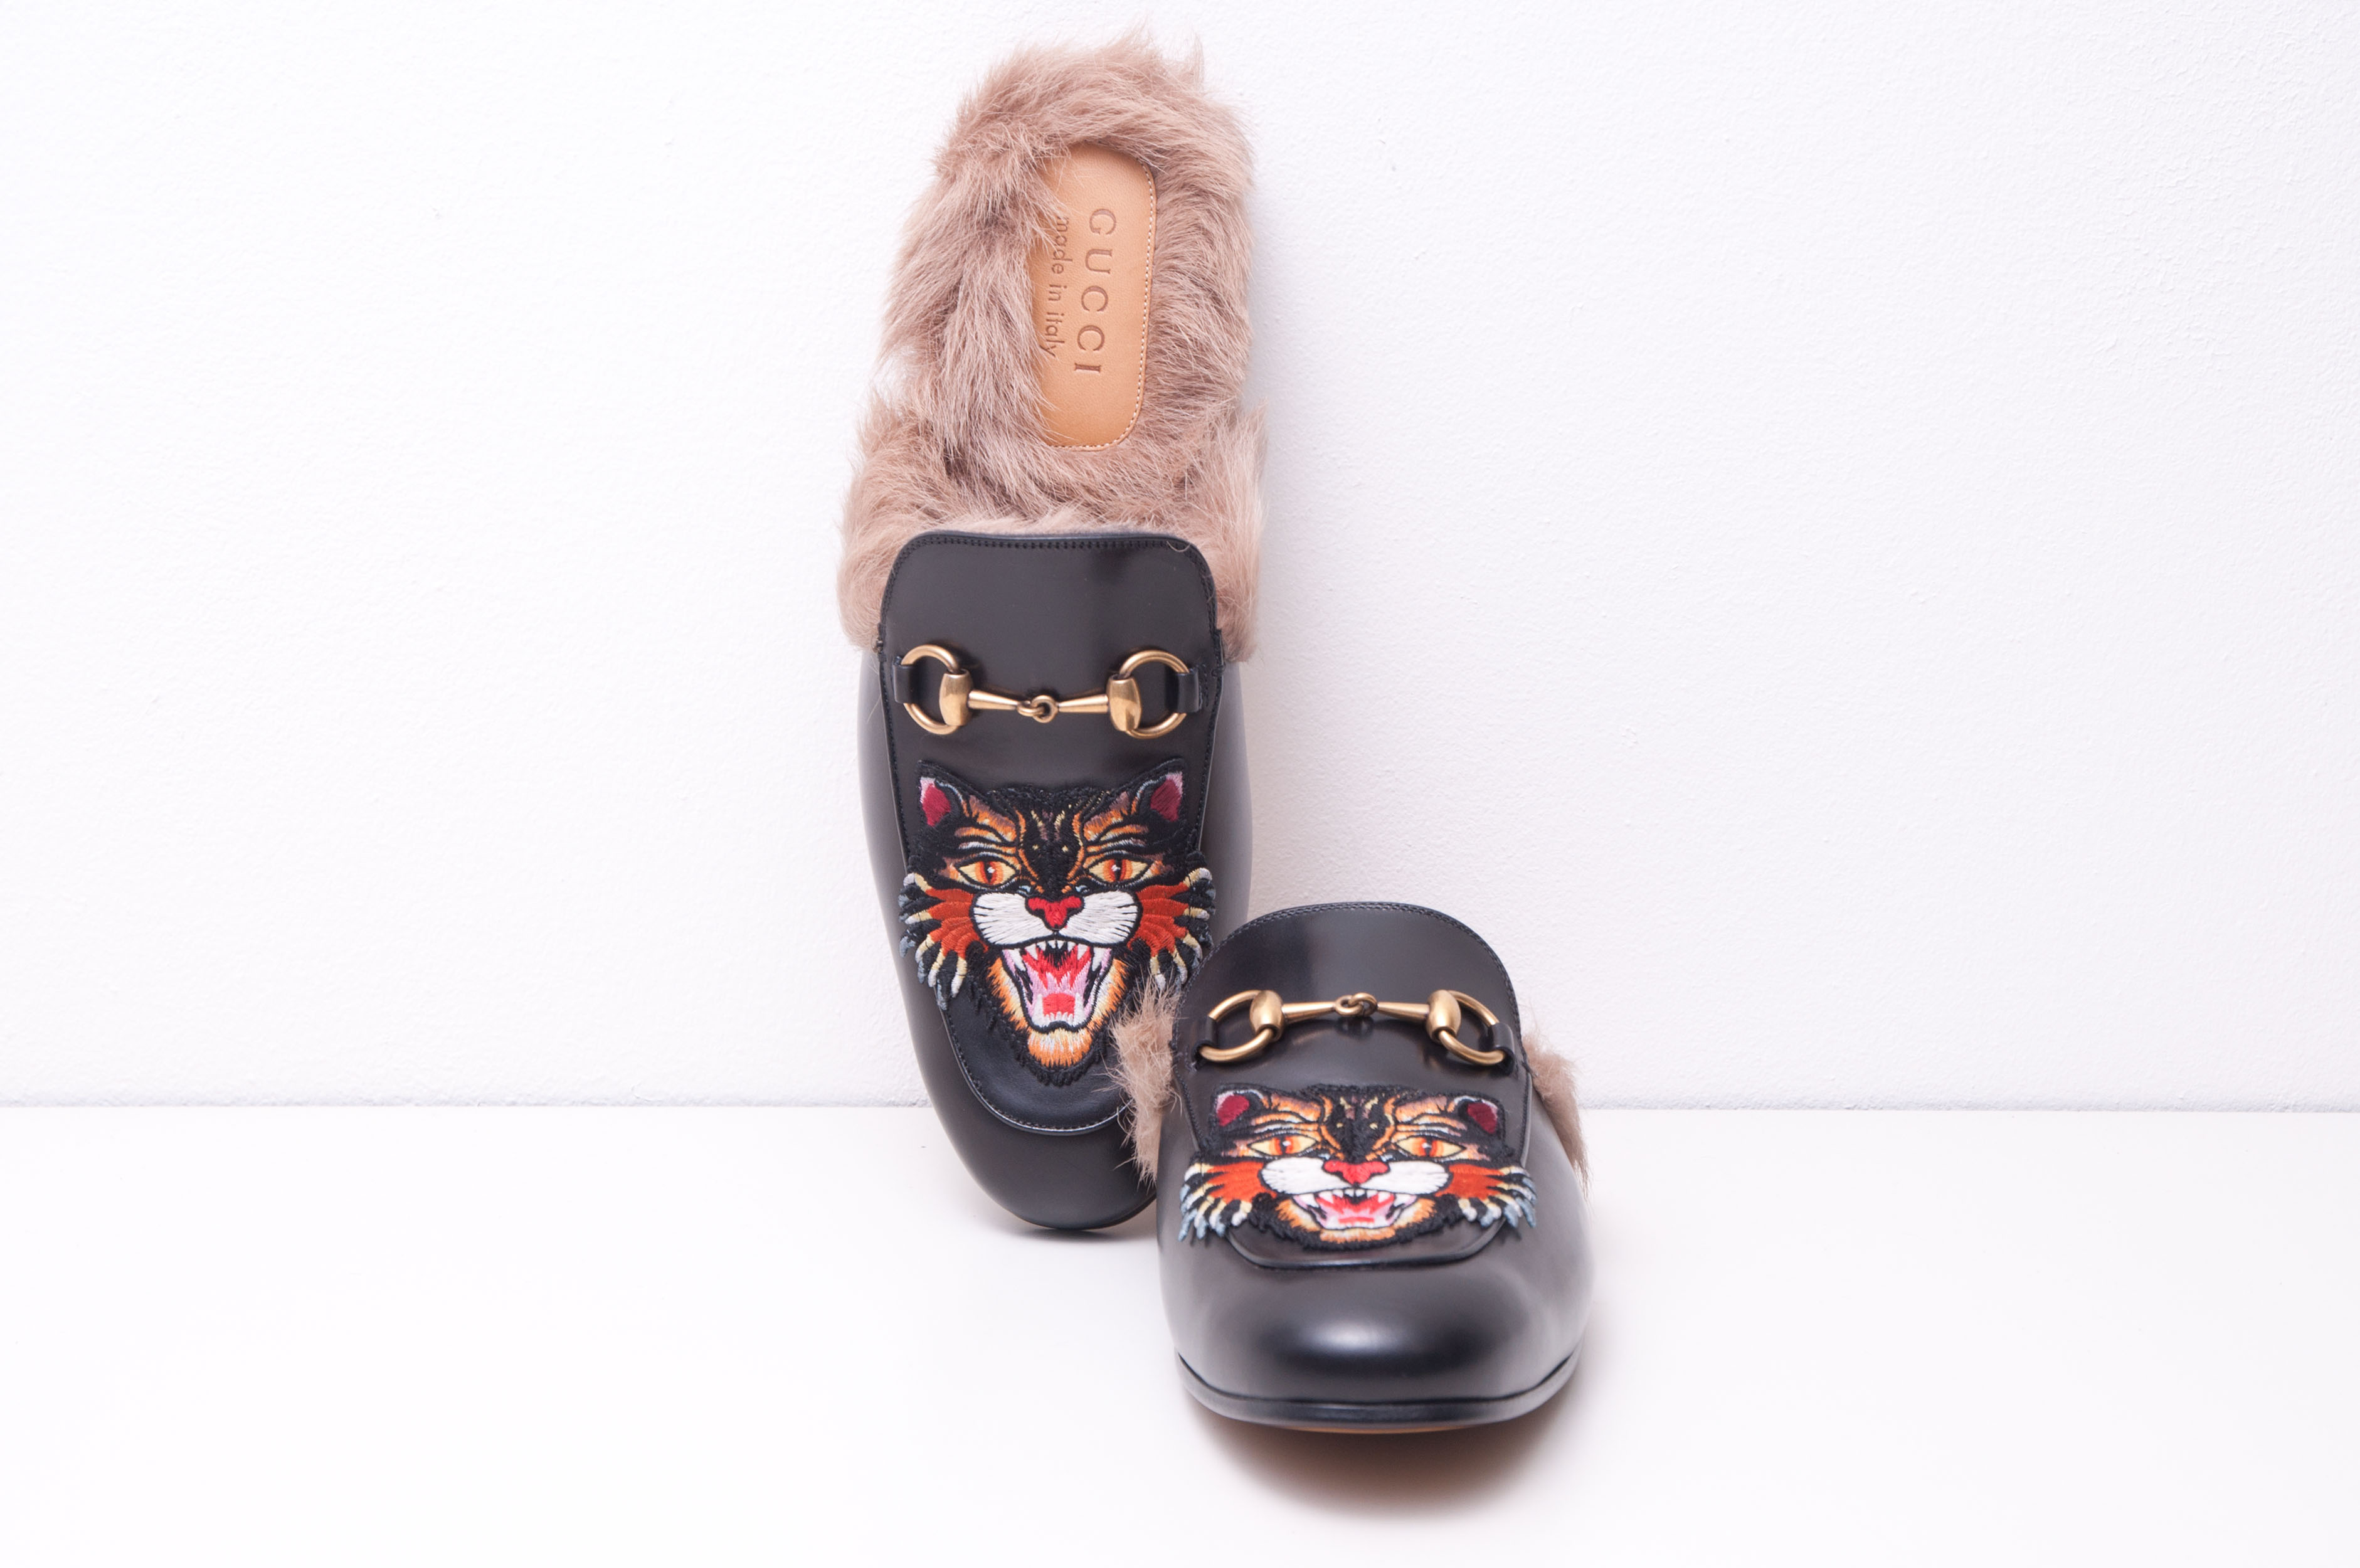 d60f3a5d4d3e Gucci Angry Cat Applique Princetown Fur Lined Slippers Size 10.5 - Slip Ons  for Sale - Grailed